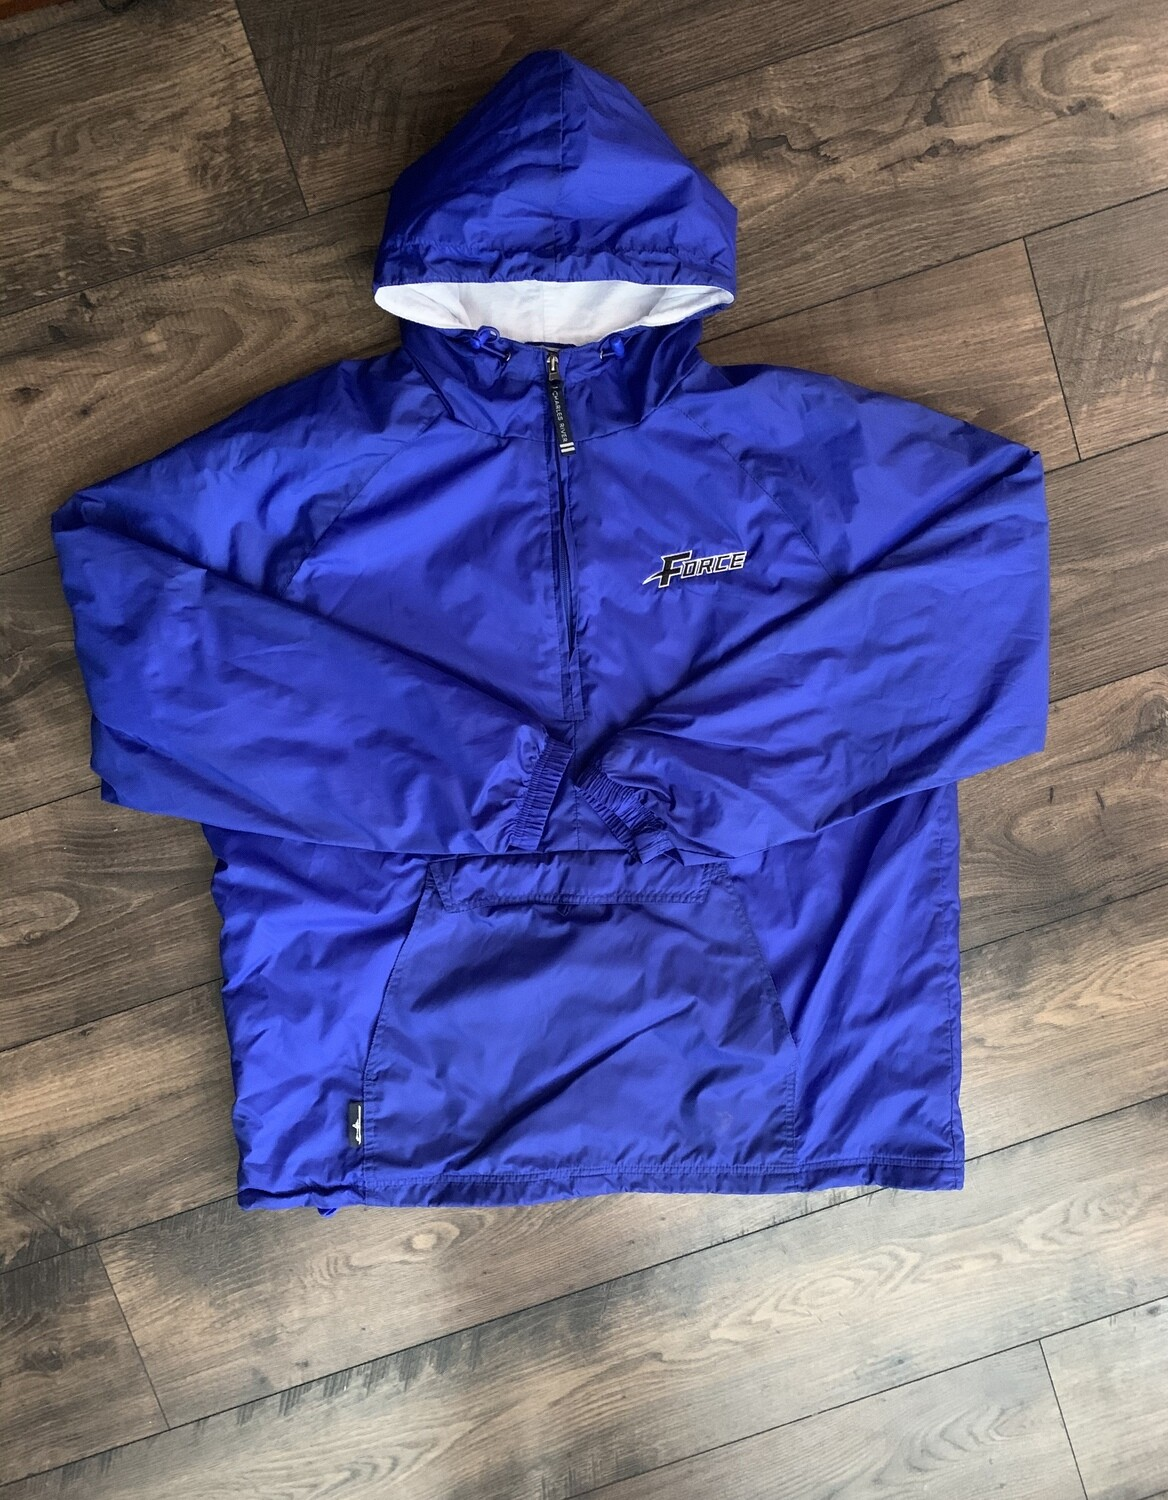 Unisex Adult Charles River 1/2 Zip Lined Royal Rain Pullover with Embroidered Force